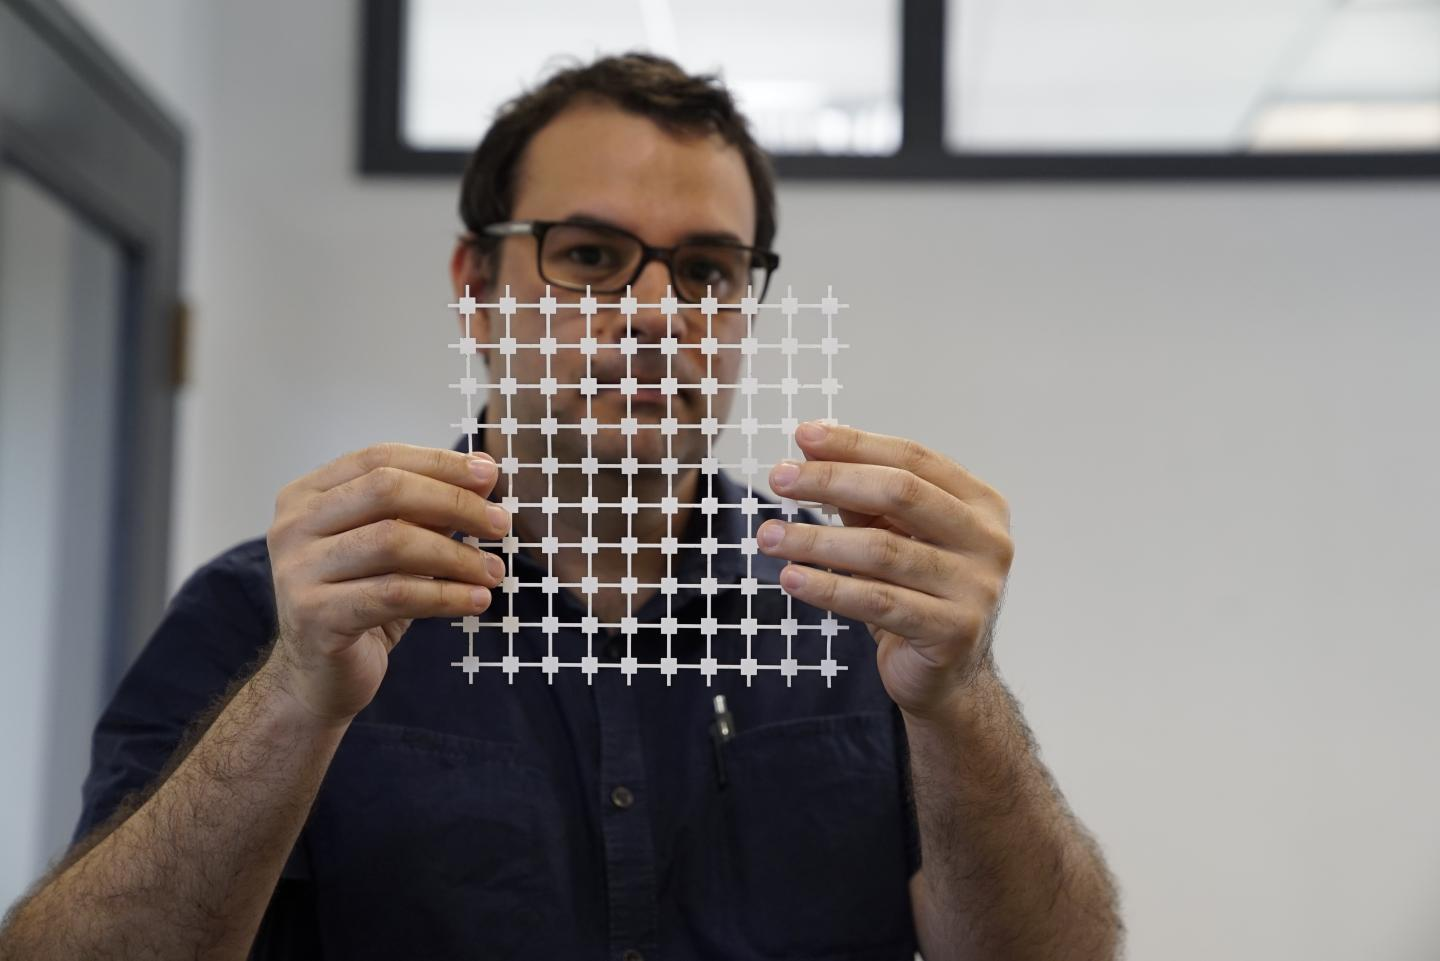 Jose Gomez-Marquez, co-director of MIT's Little Devices Lab, holds a sheet of paper diagnostic blocks, which can be easily printed and then combined in various ways to create customized diagnostic devices. (Source: Melanie Gonick/MIT)